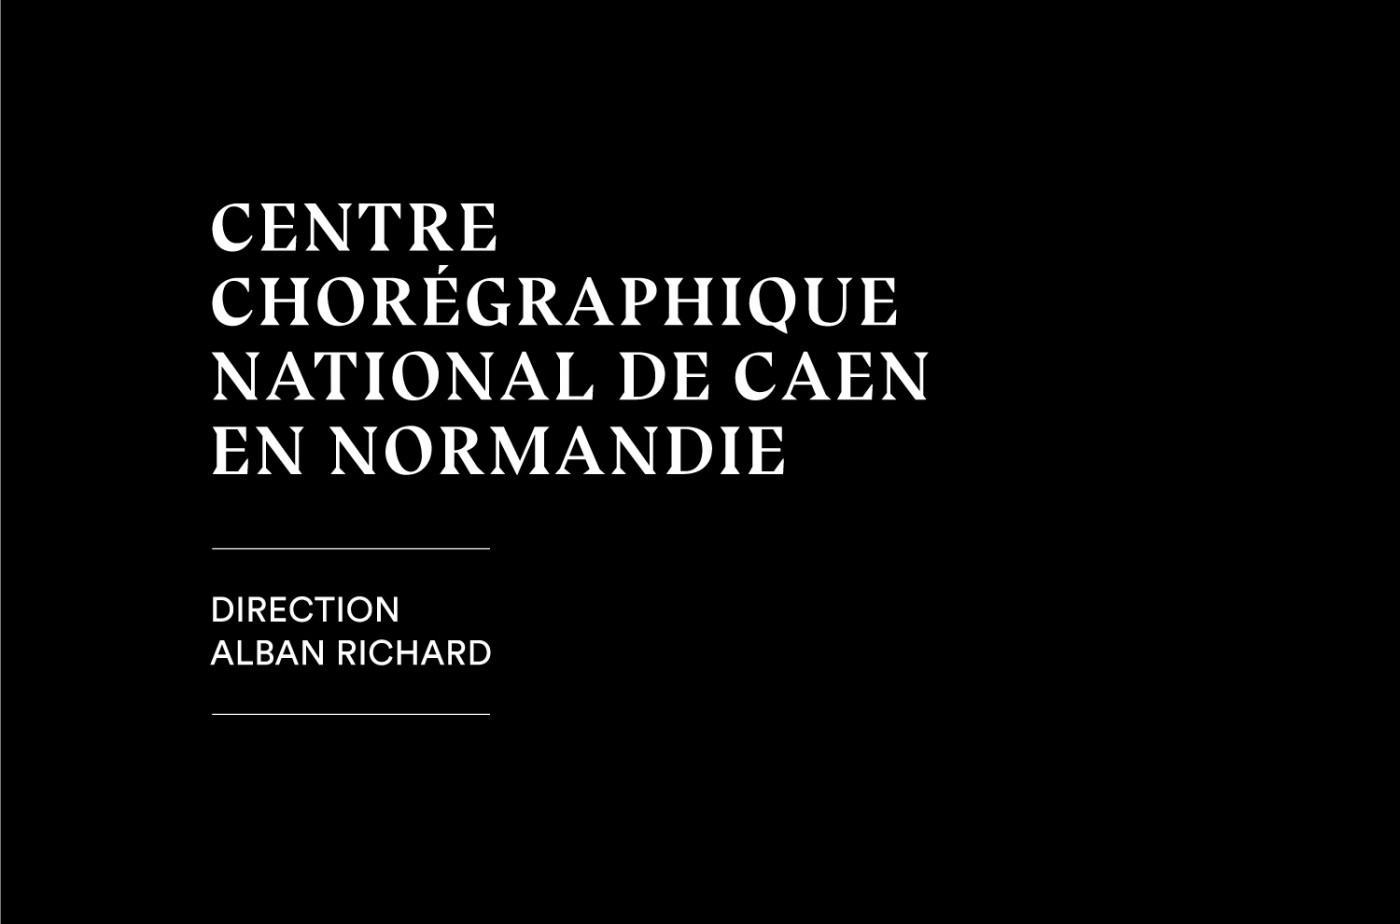 Murmure journal centre chor graphique national de caen en normandie - Journal en normandie ...